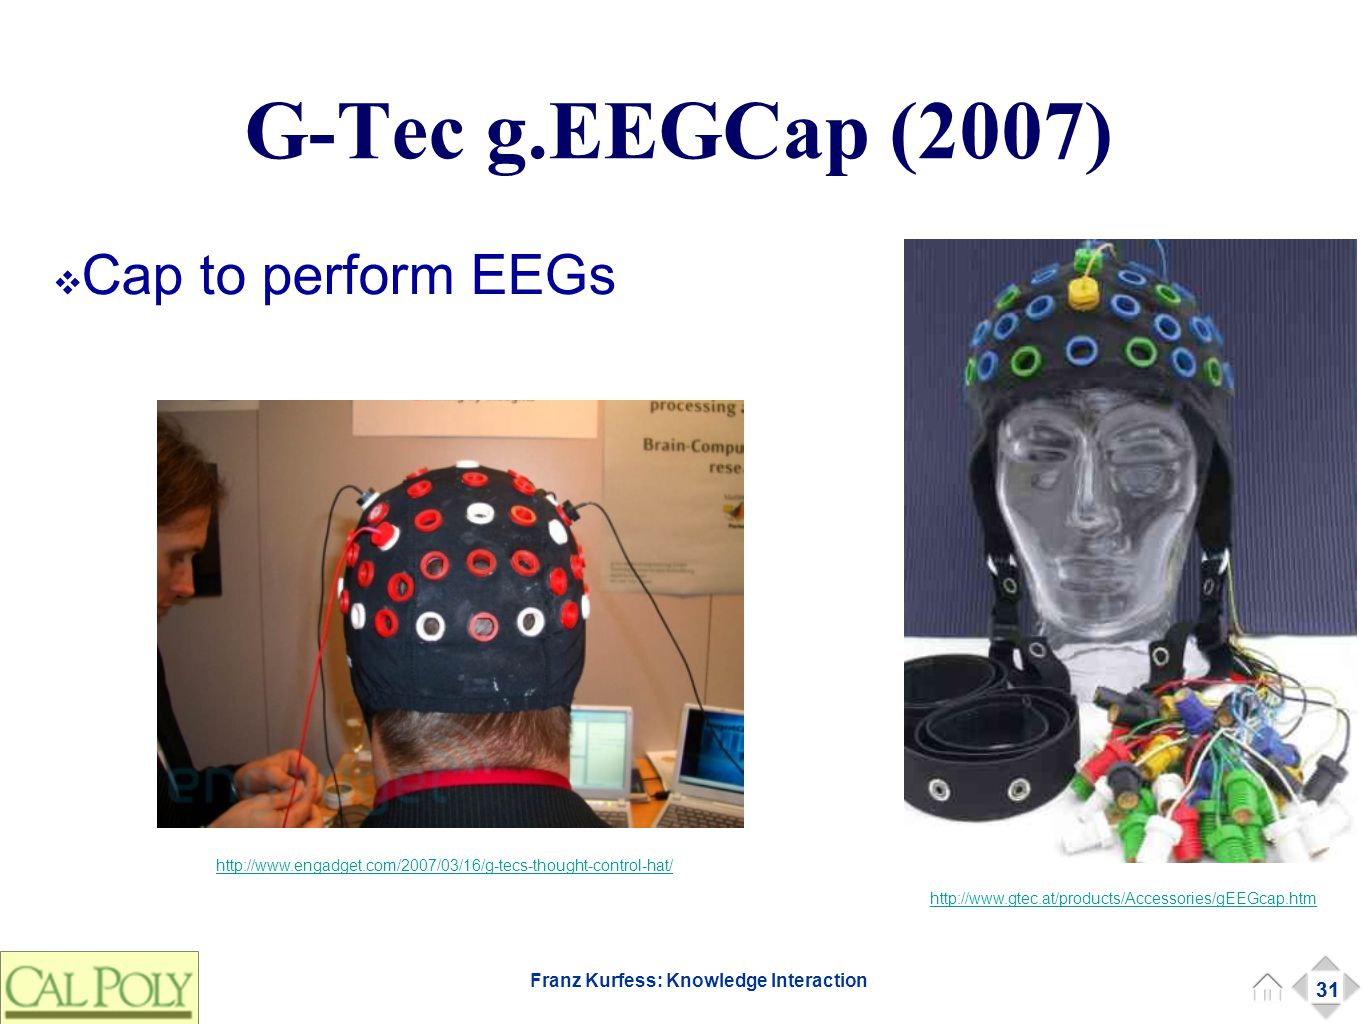 31 Franz Kurfess: Knowledge Interaction G-Tec g.EEGCap (2007) ❖ Cap to perform EEGs 31 http://www.gtec.at/products/Accessories/gEEGcap.htm http://www.engadget.com/2007/03/16/g-tecs-thought-control-hat/